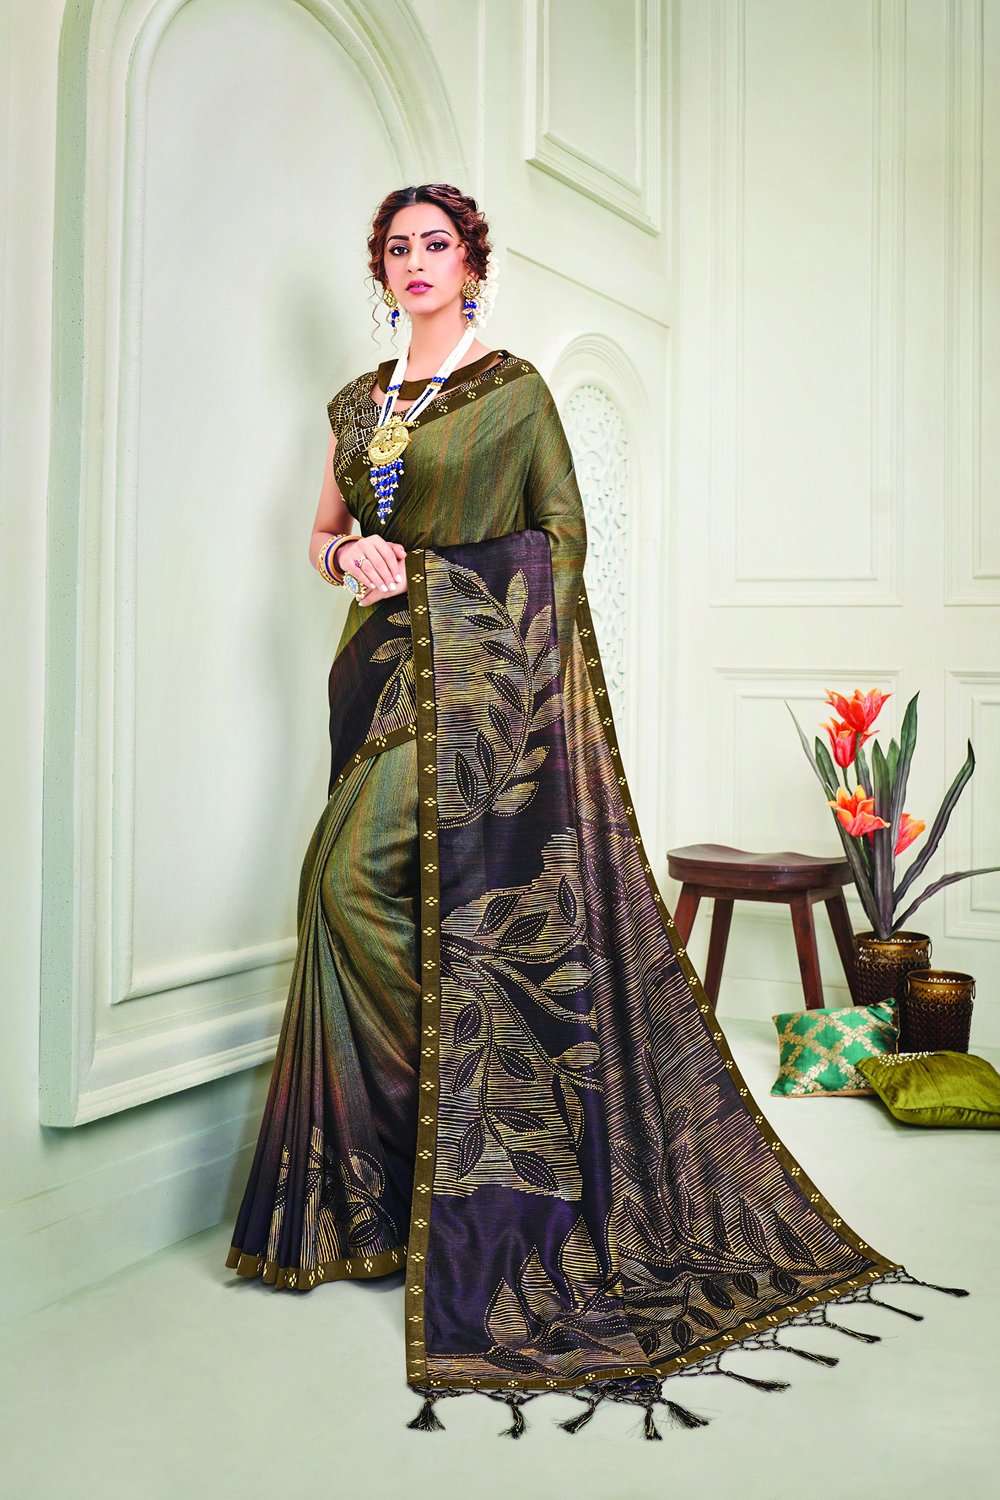 Personify exquisiteness in this shaded two-tone saree perfected with metallic foil foil leaf motifs  Pair with a contrasting long maharani style necklace to give an added playful touch